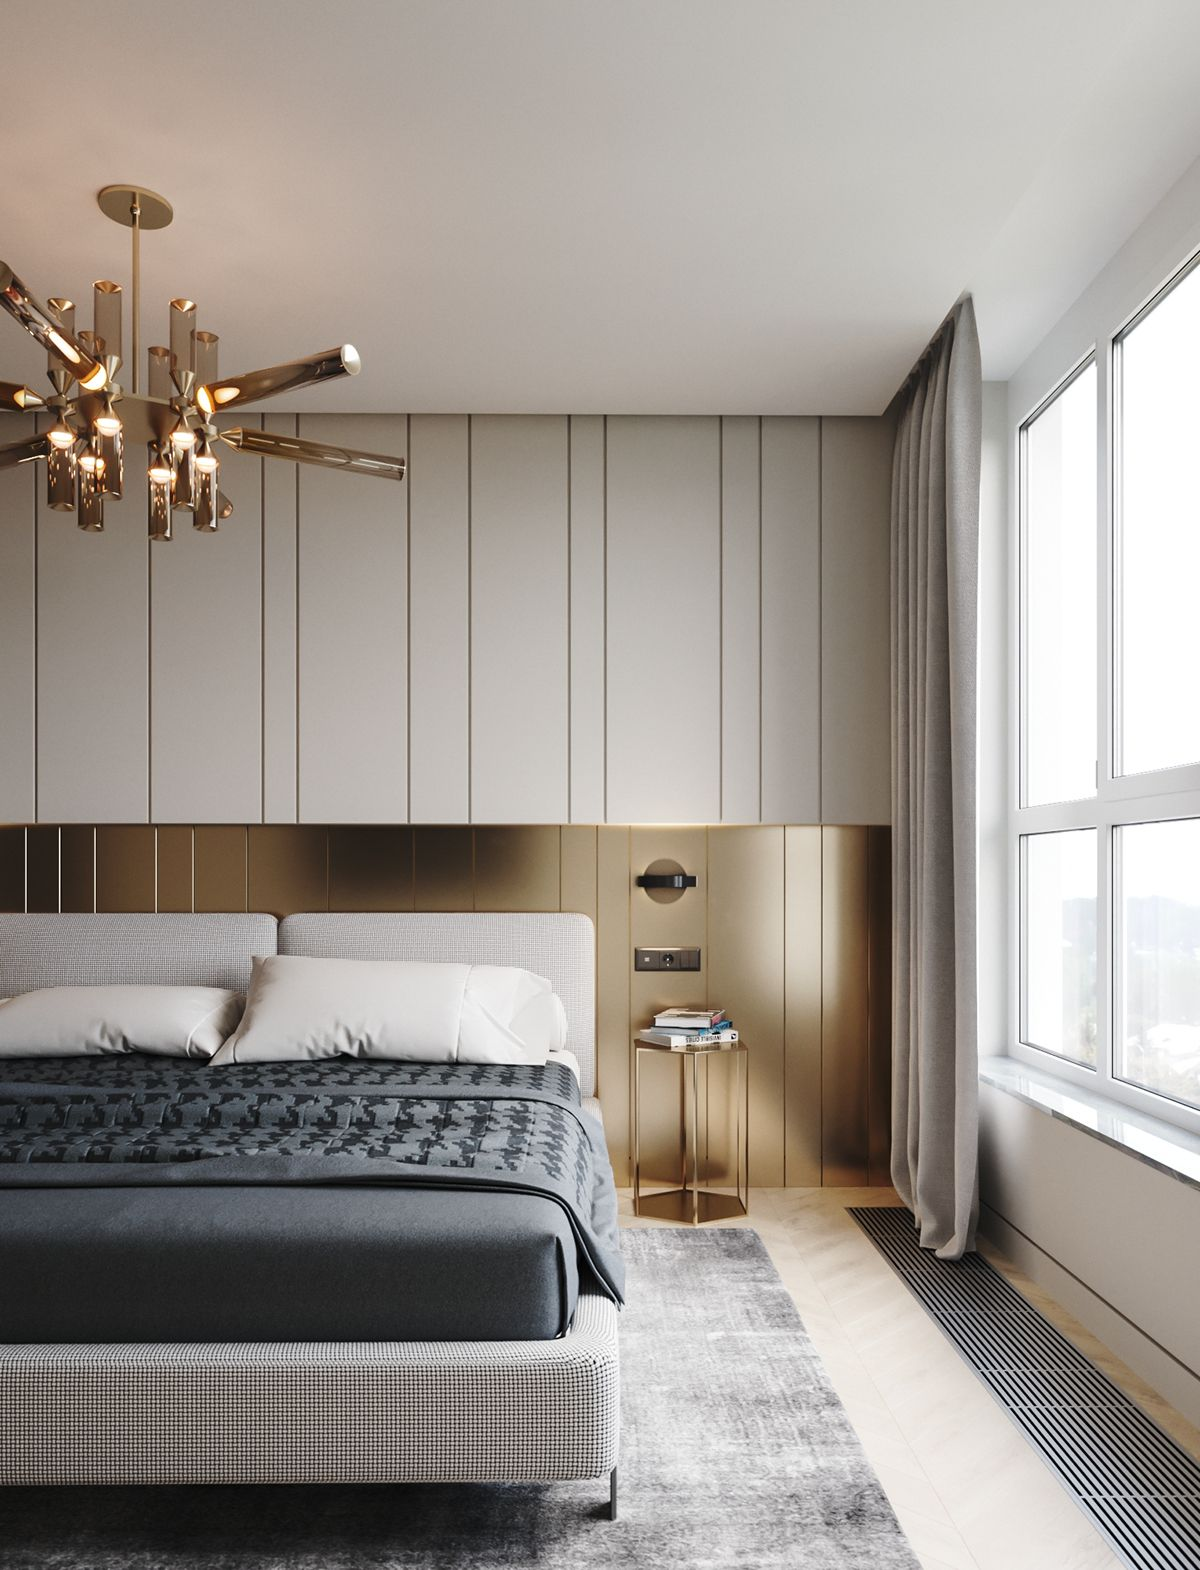 Apartment in onyx colours on behance in 2019 for Hotel home decor